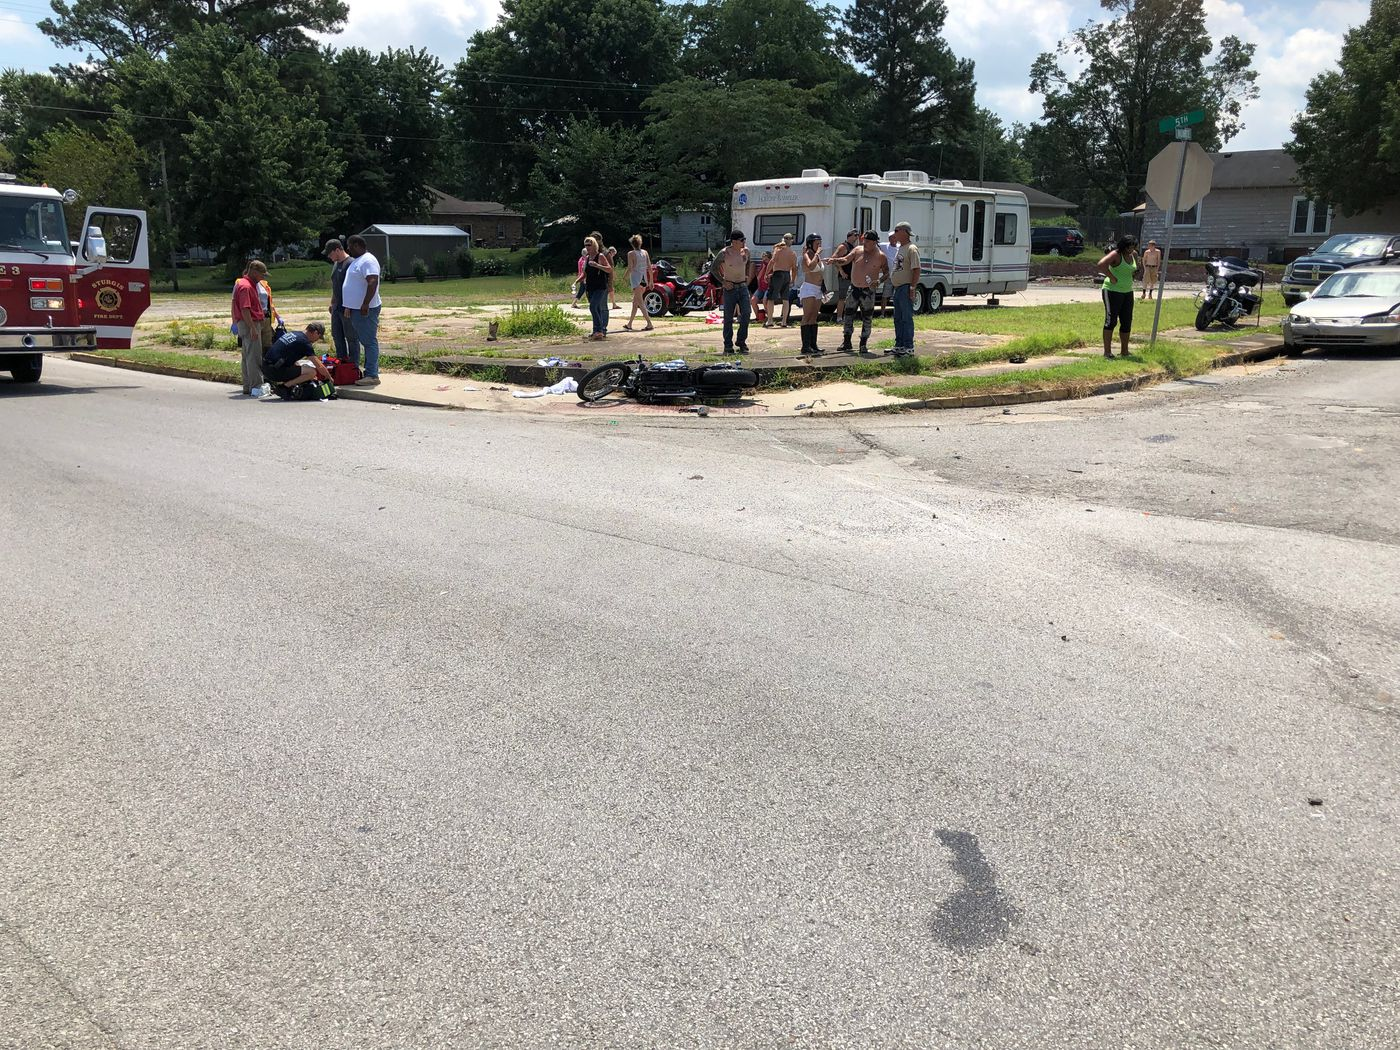 Bikers hit by car in Sturgis (Source: Union Co. Sheriff)